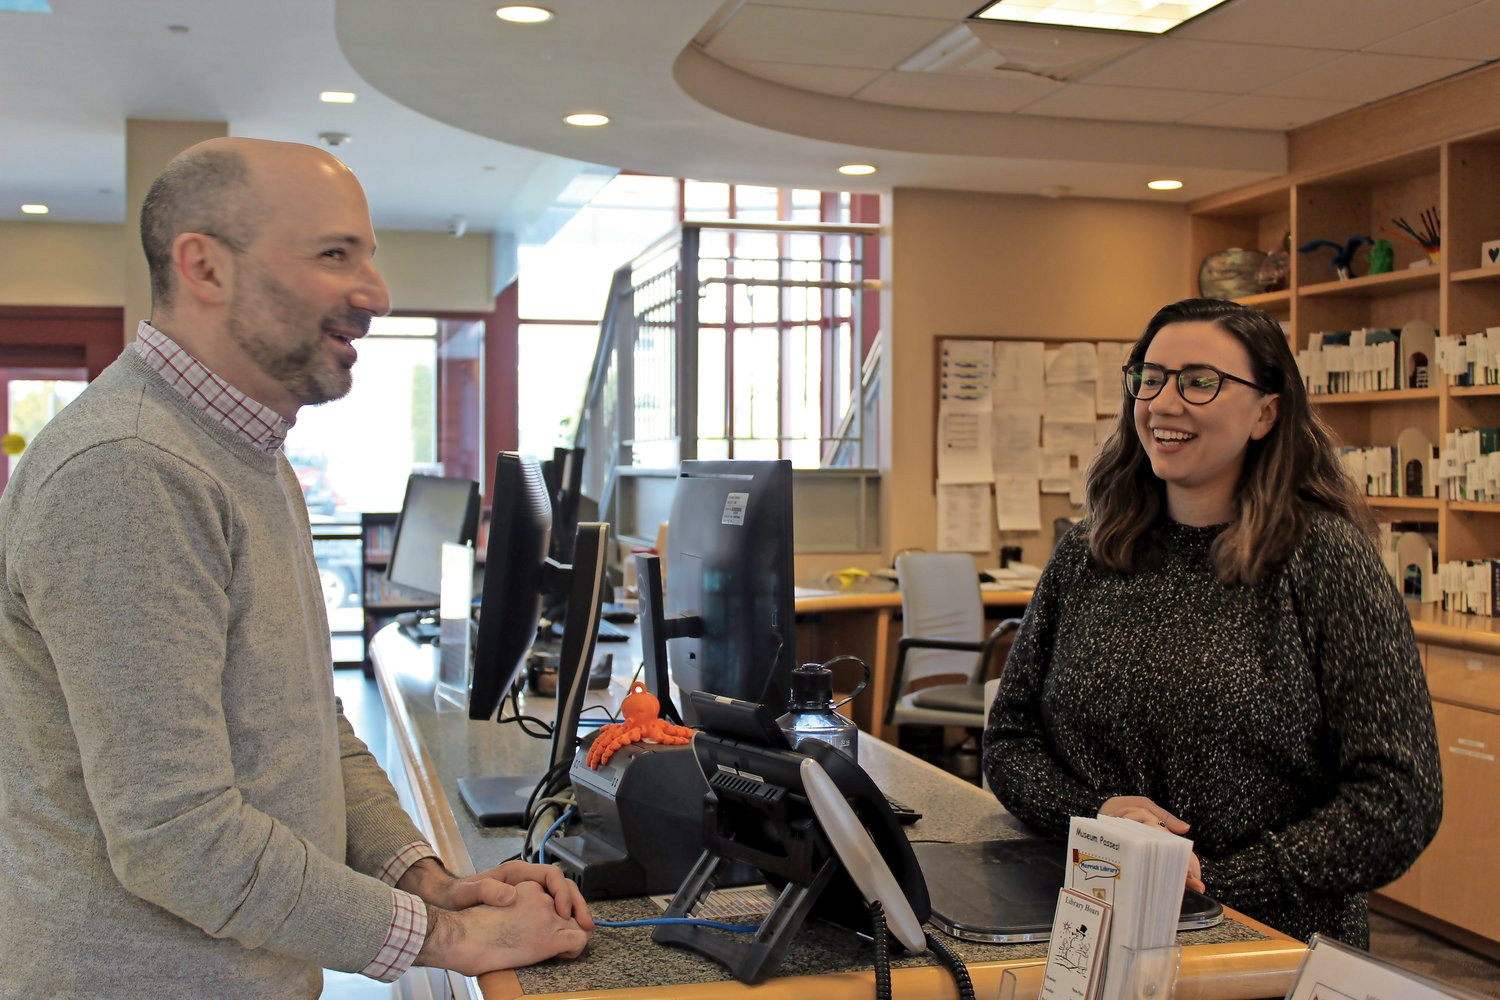 Dan Chuzmir chatted with circulation clerk Katherine Rubino at the front desk.